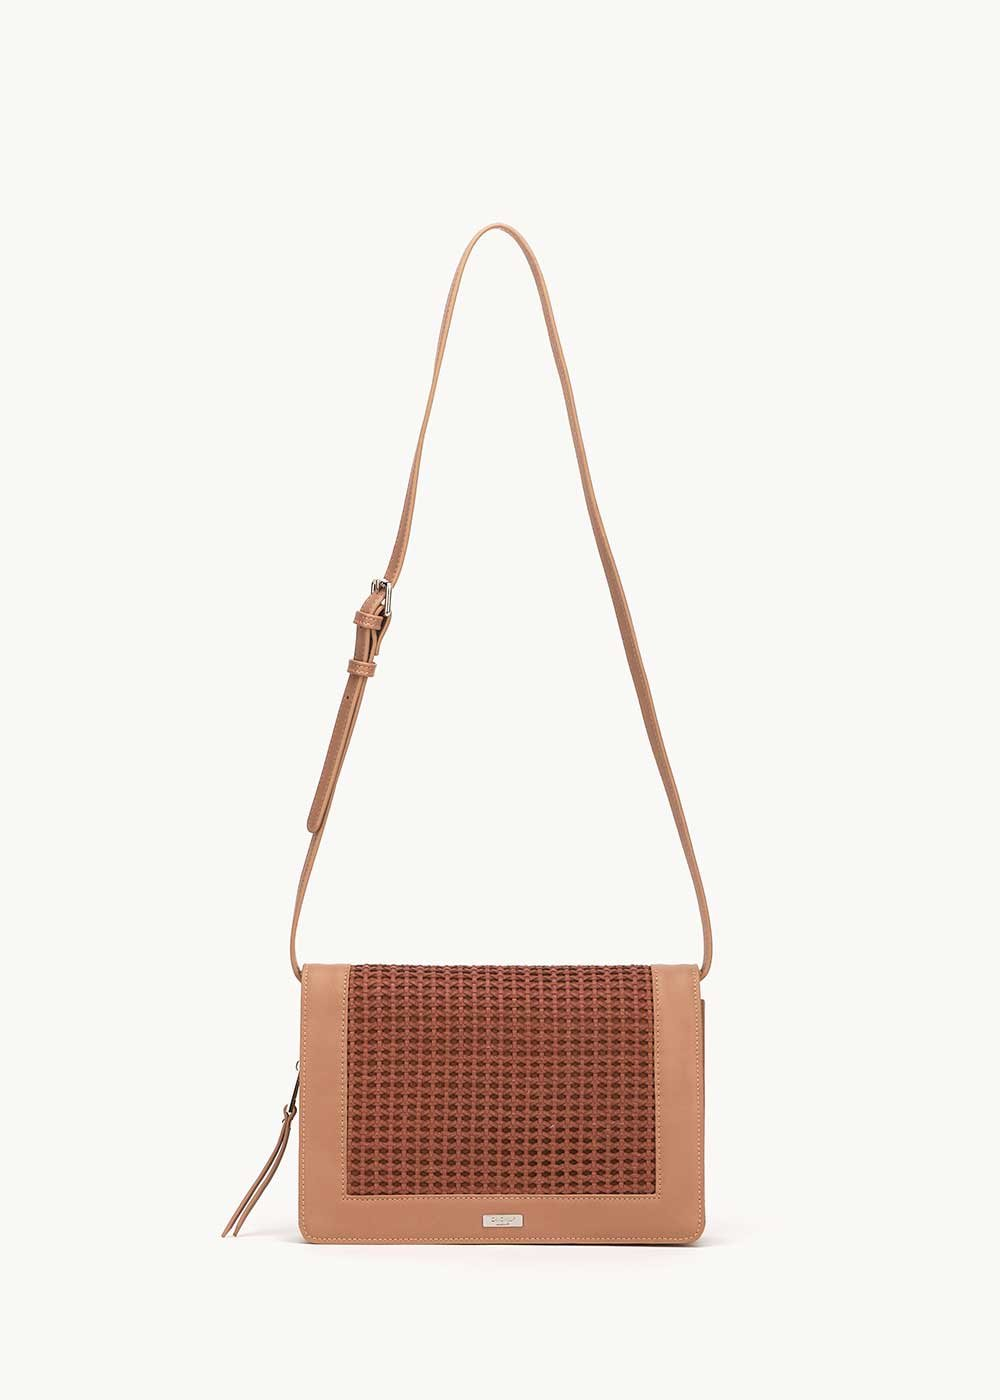 Bardhy shoulder bag with embellished front side - Pecan - Woman